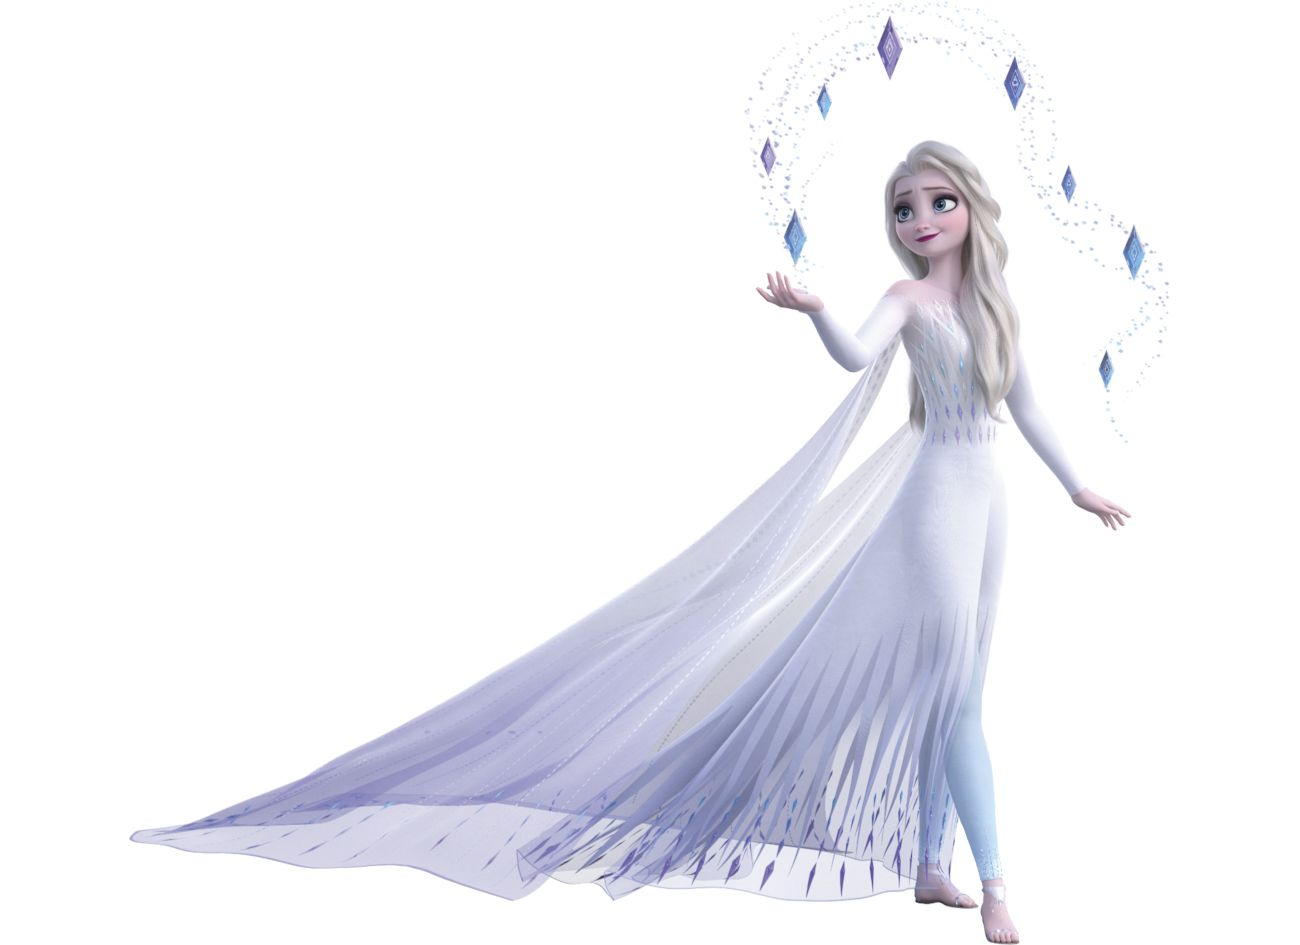 Elsa Frozen 2 White Dress Hair Down Imagesthe New Elsa S Fifth Spirit Look In Frozen 2 Has Won Over Millions Of Hearts In 2020 Frozen Elsa Dress Queen Elsa Disney Elsa